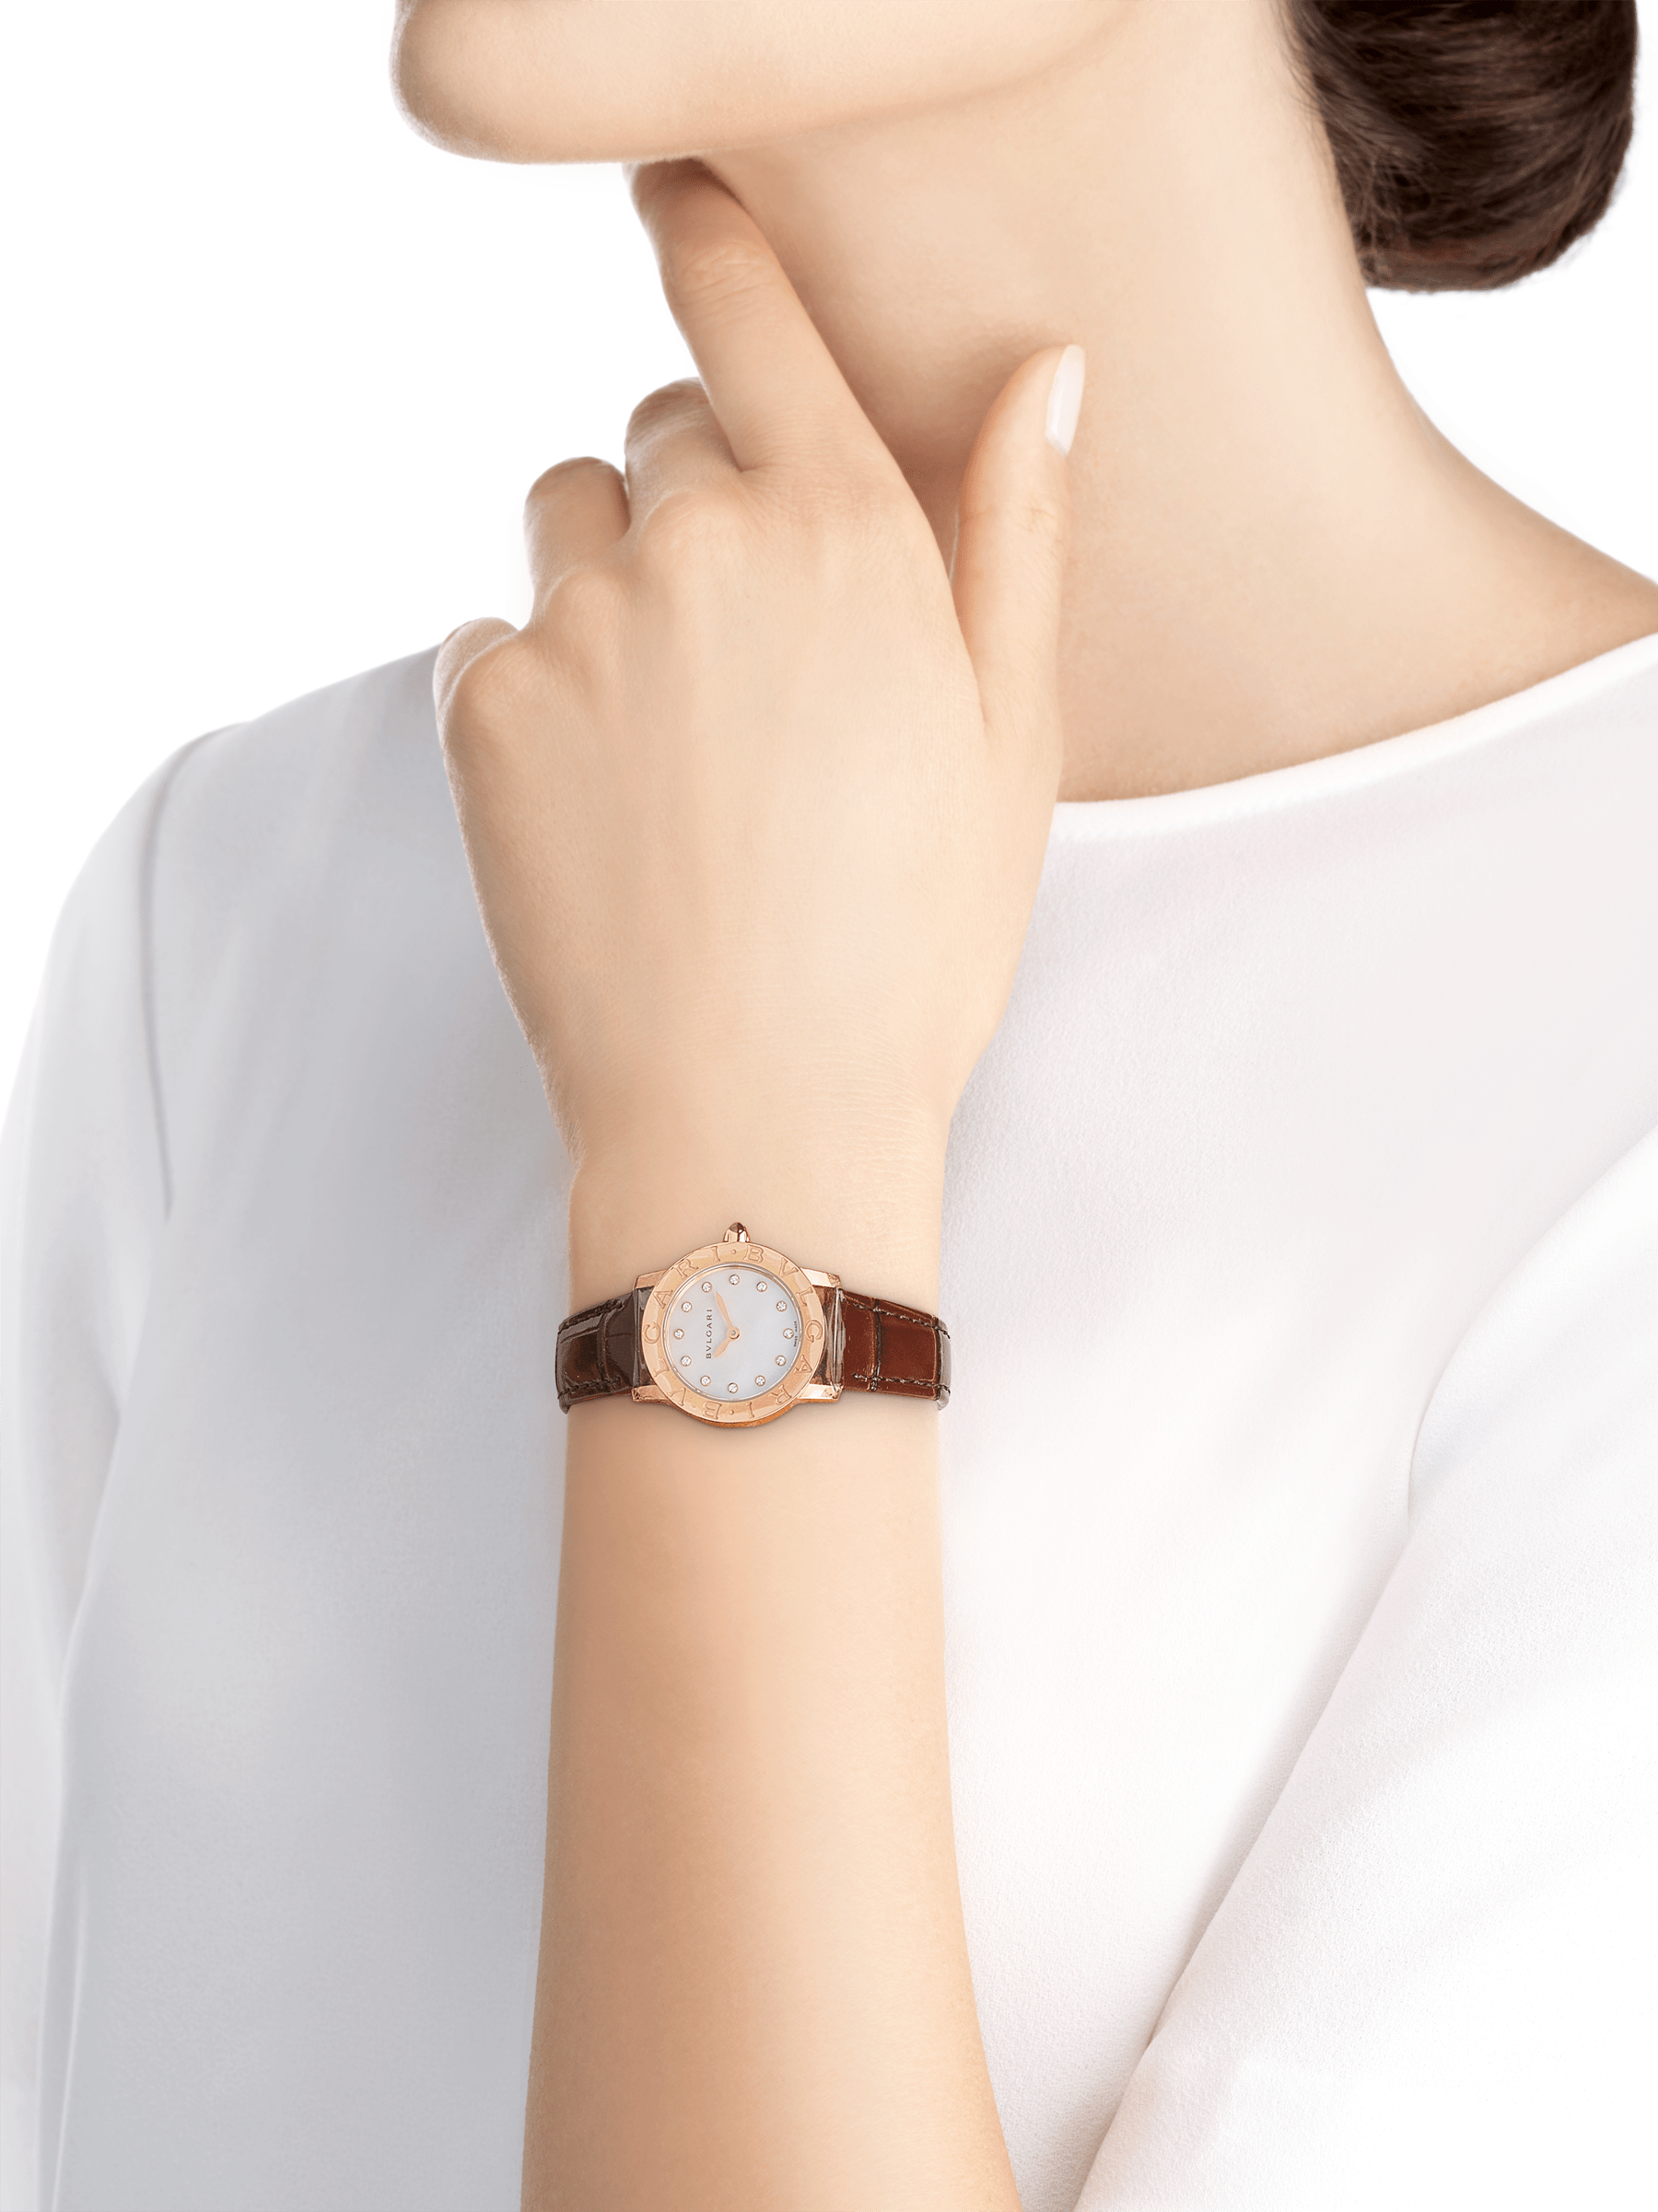 BVLGARI BVLGARI watch with 18 kt rose gold case, white mother-of-pearl dial, diamond indexes and shiny brown alligator bracelet 102751 image 4